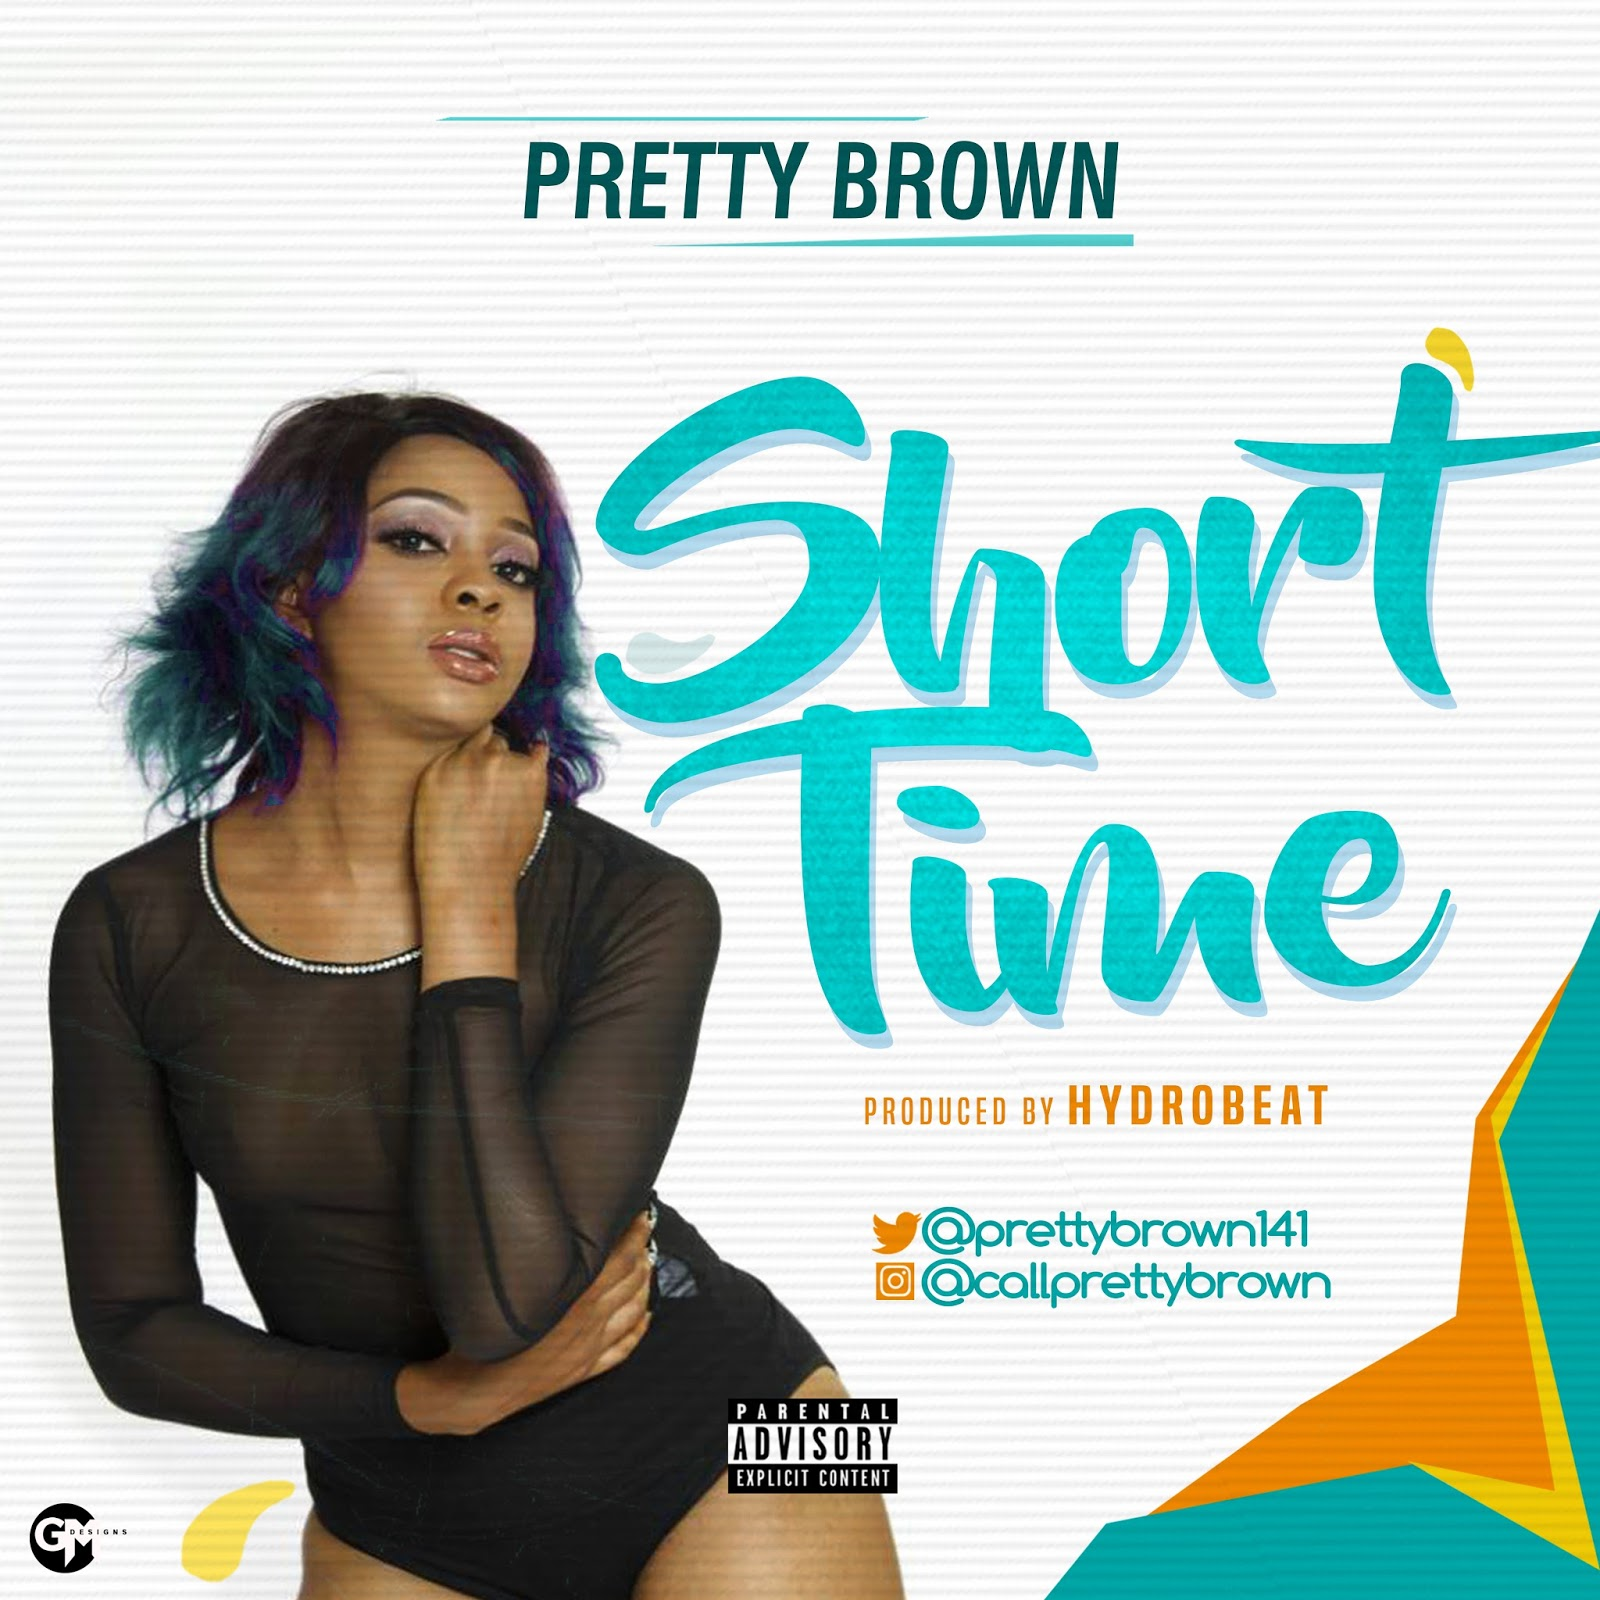 MUSIC PREMIERE: Pretty Brown – Short Time (Prod. HydroBeat) | @prettybrown141 @famoushydrobeat